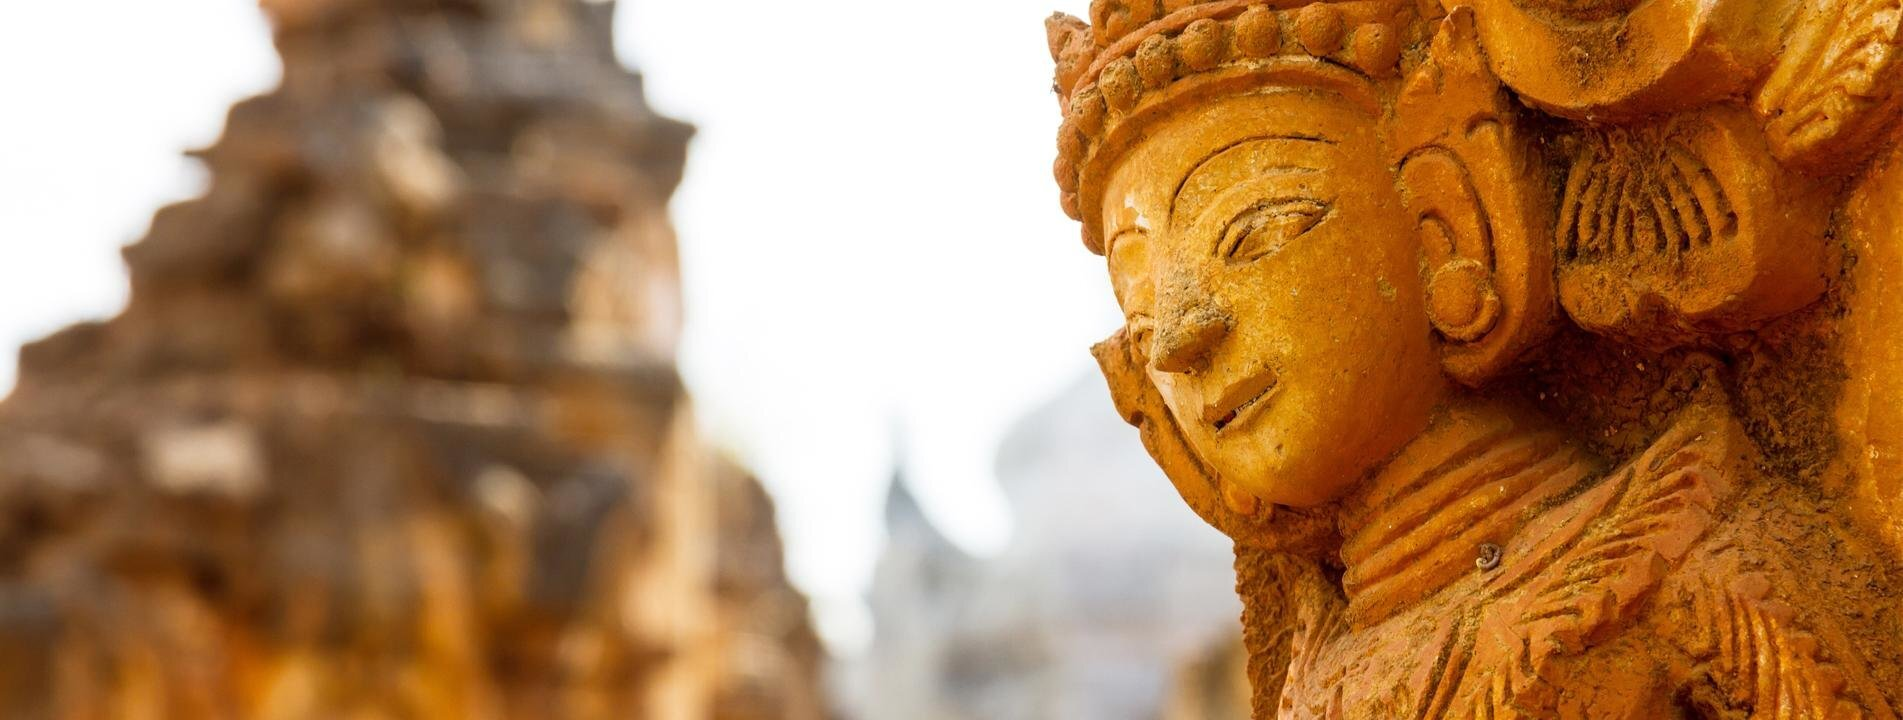 A Nat sculpture of Indein Pagoda Complex of Inle Lake